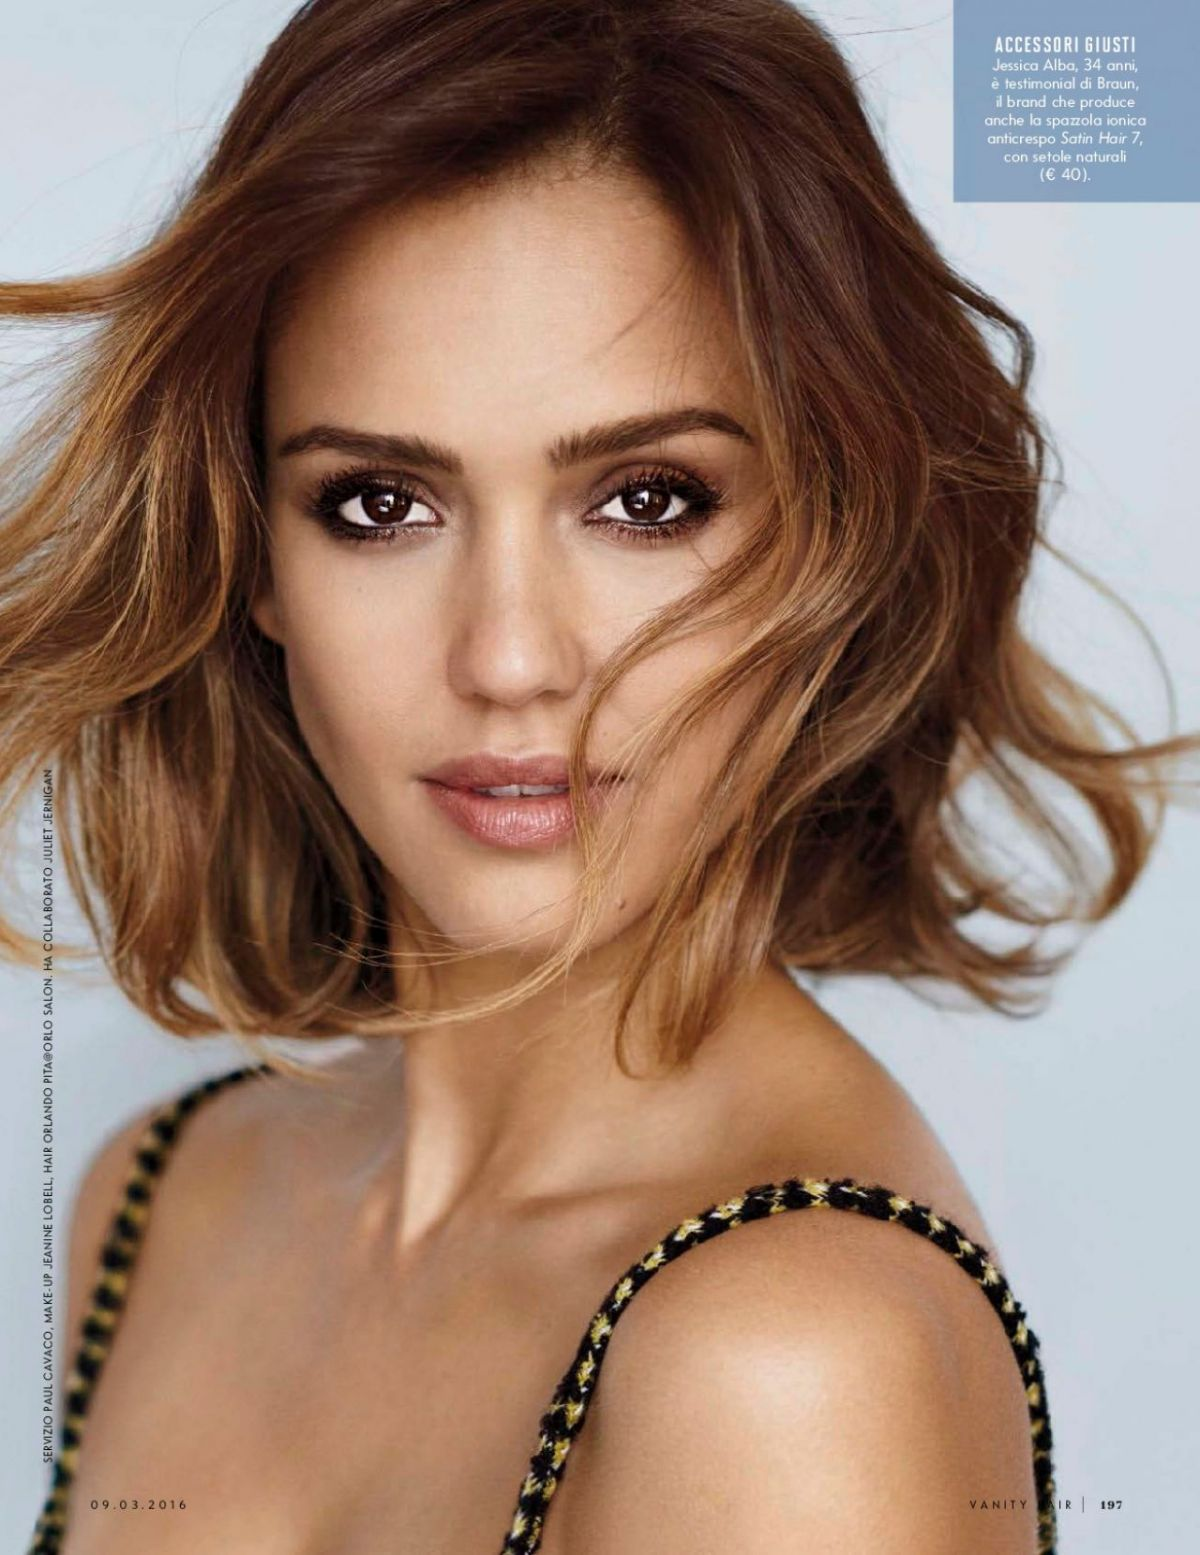 JESSICA ALBA in Vanity Fair Magazine, Italy March 2016 Issue